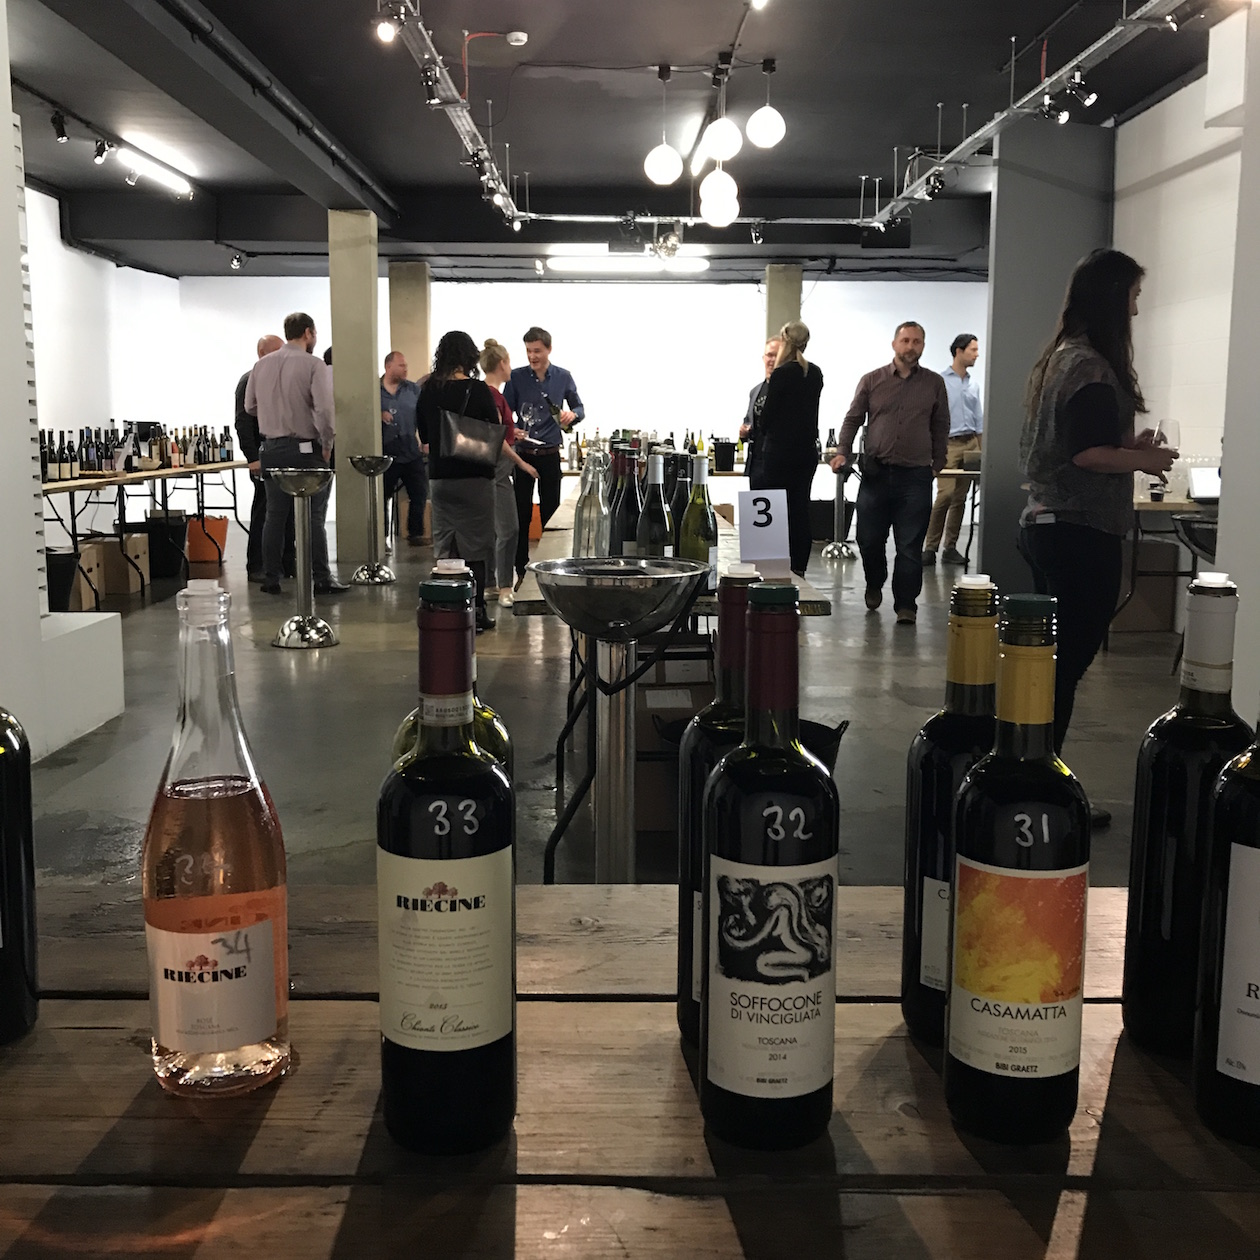 Artisanal producers were the focus of the latest tasting from